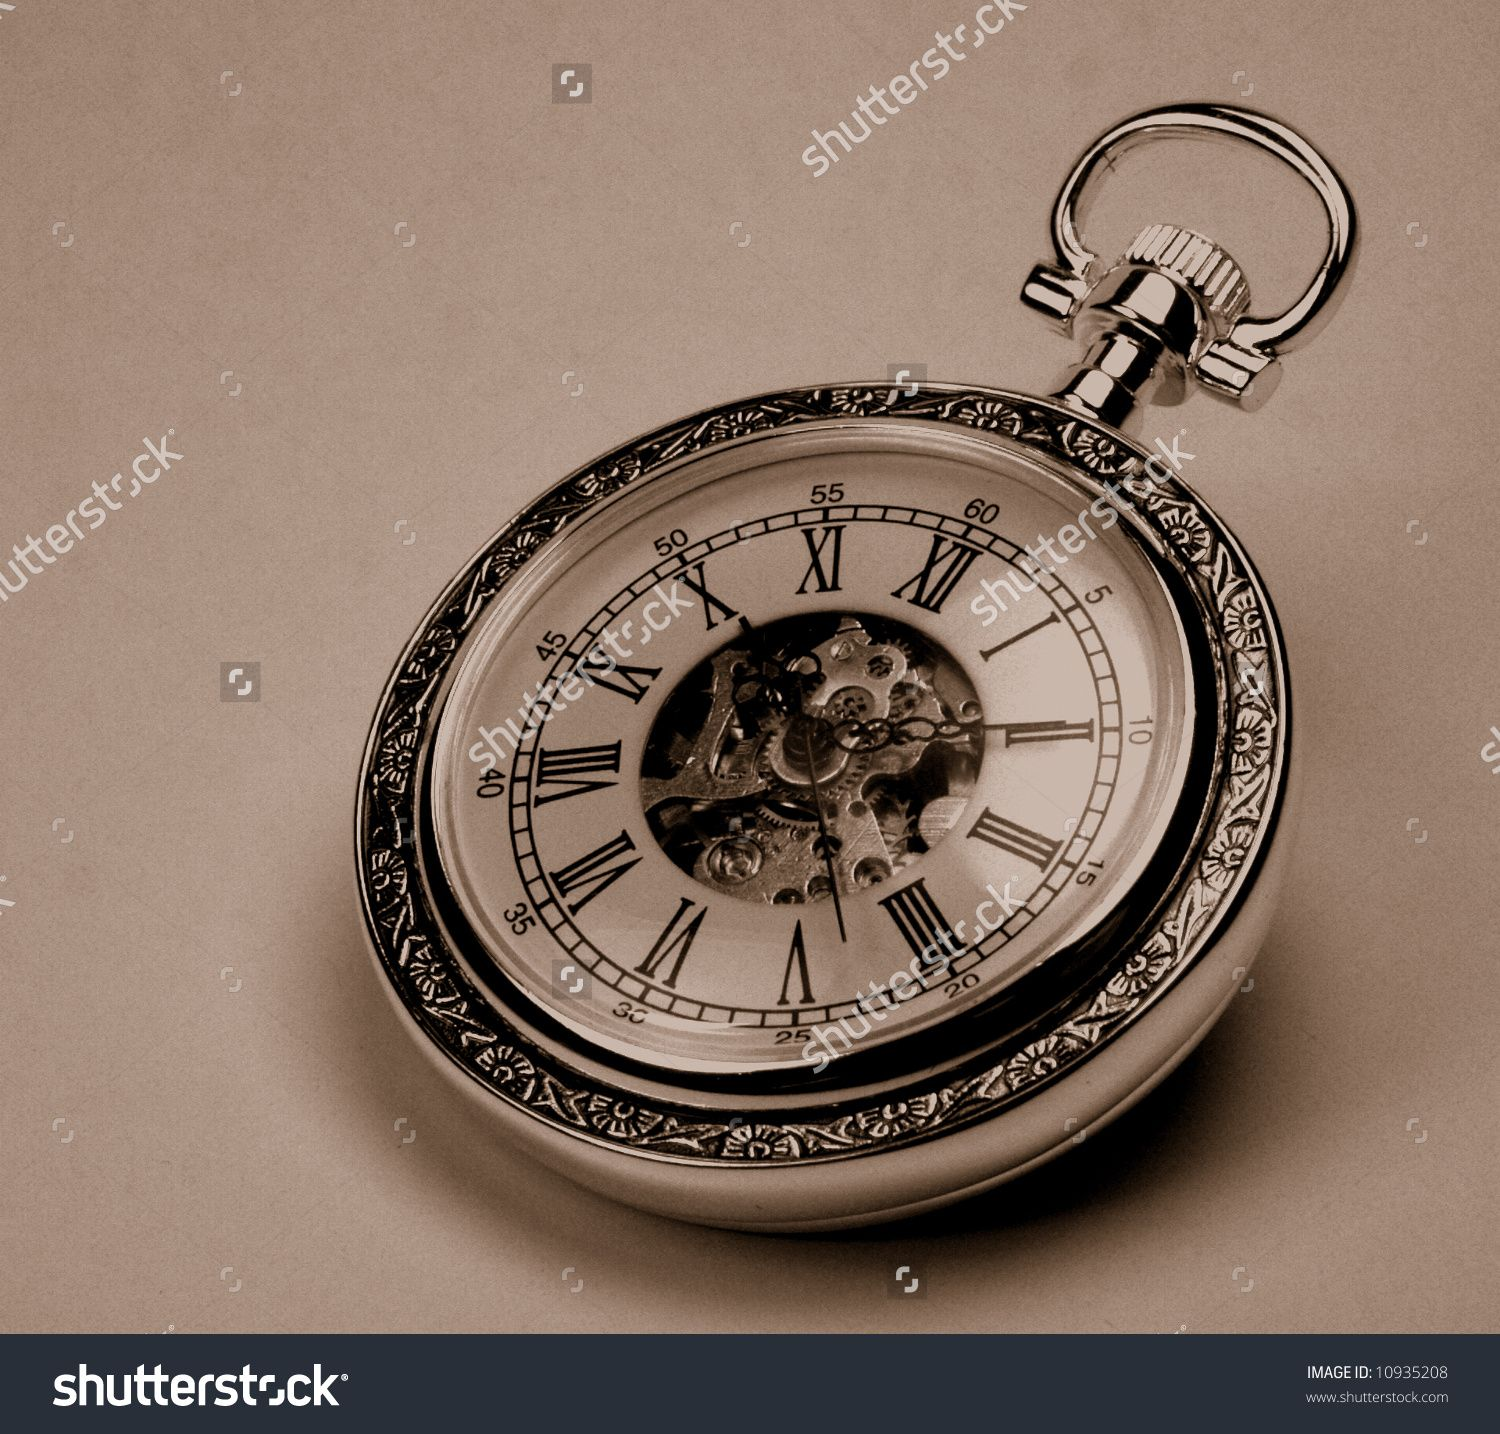 1500x1434 Old Pocket Watch Drawing Old Watch Pocket Watch